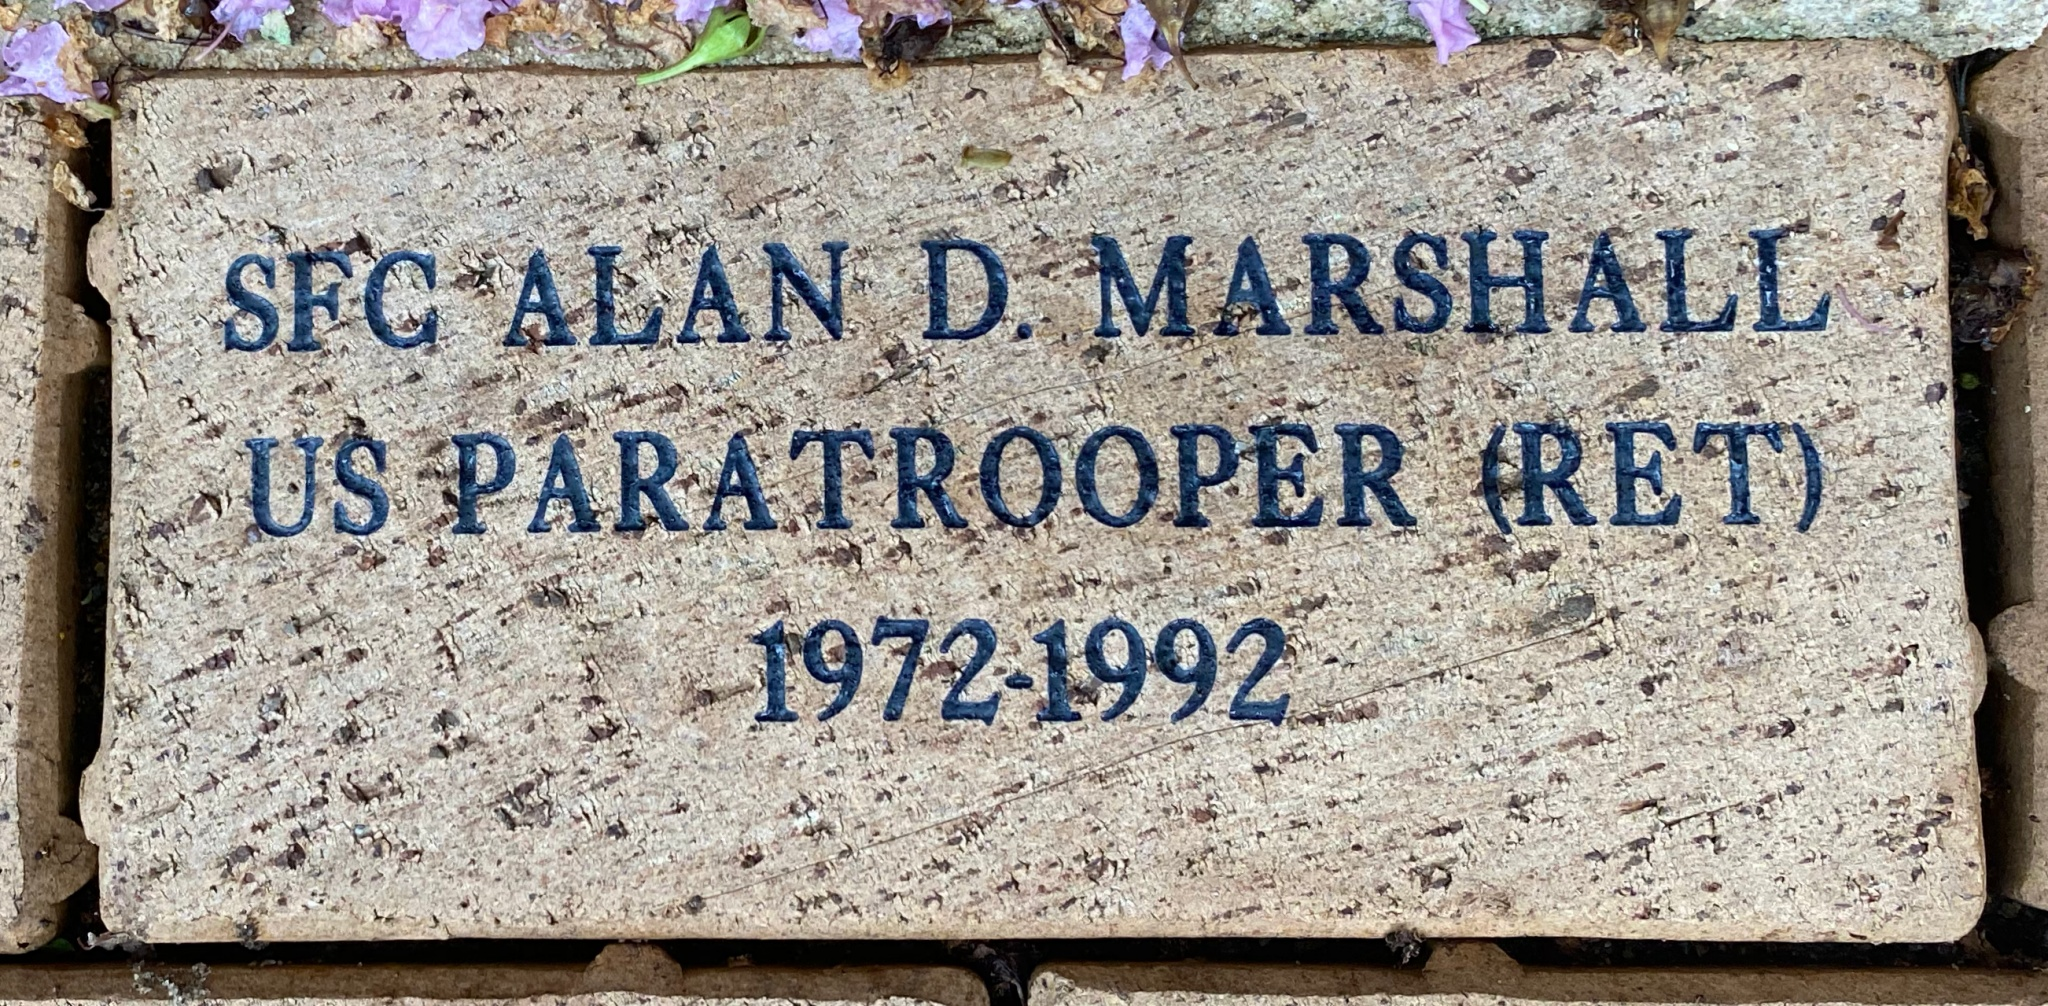 SFC ALAN D. MARSHALL US PARATROOPER (RET) 1972-1992